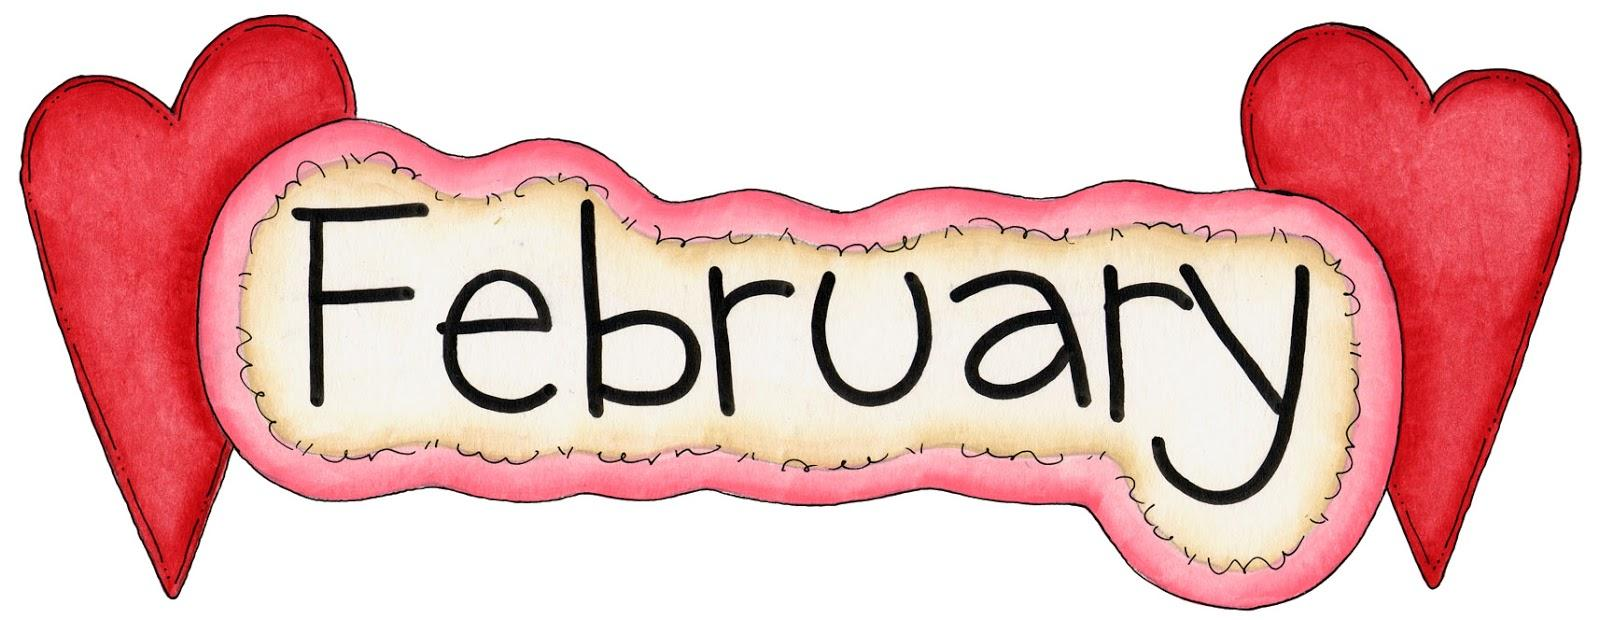 february clip art heart